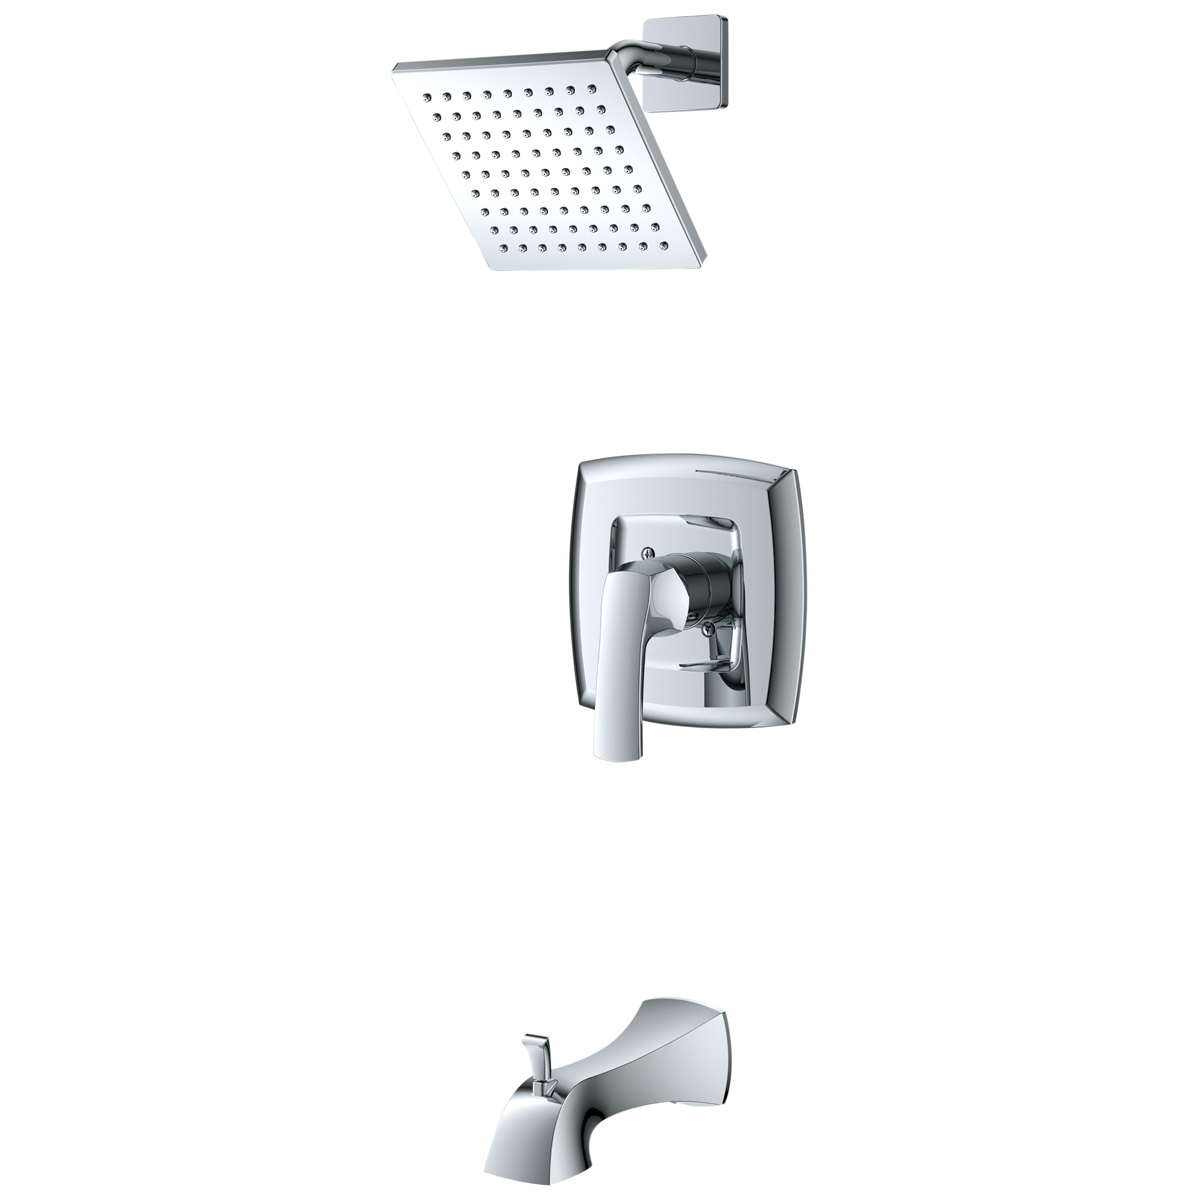 192-6419 — Tub / Shower Combo